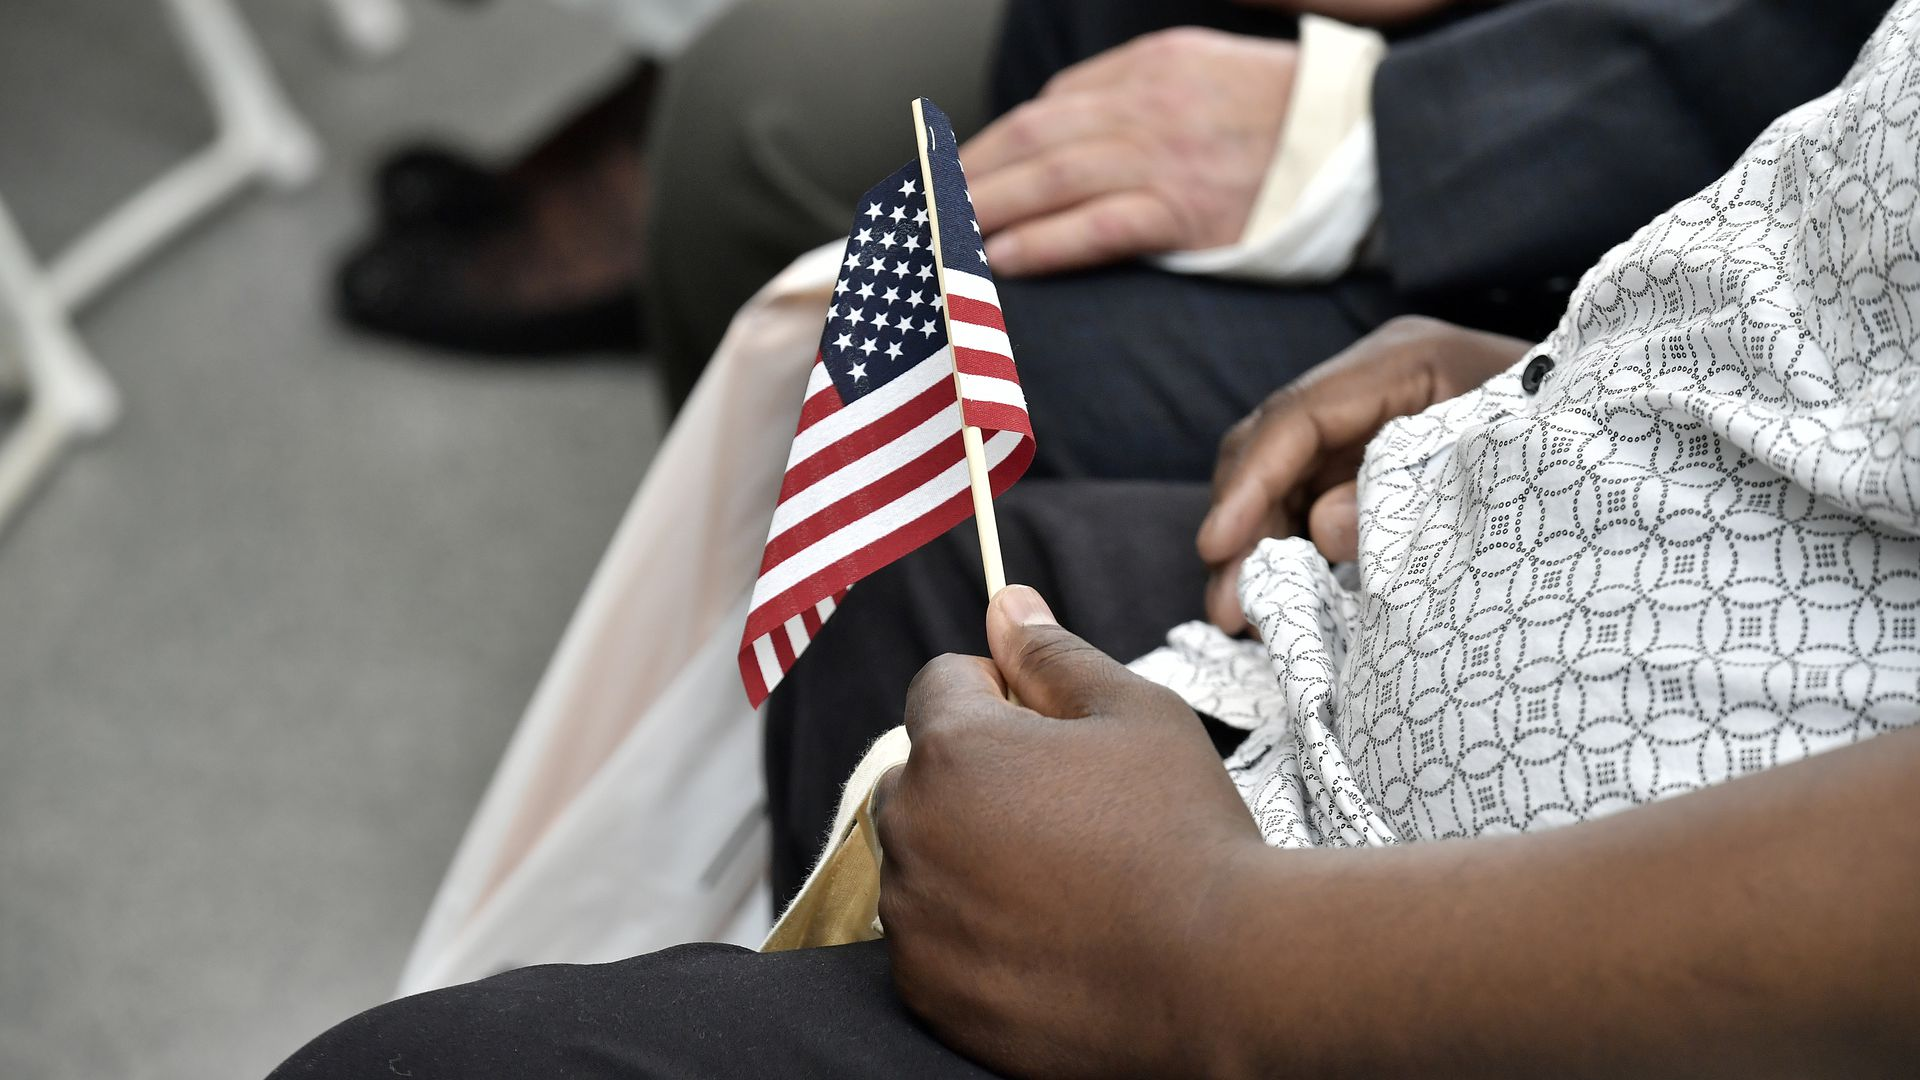 An attendee holds an American flag at a United States naturalization ceremony